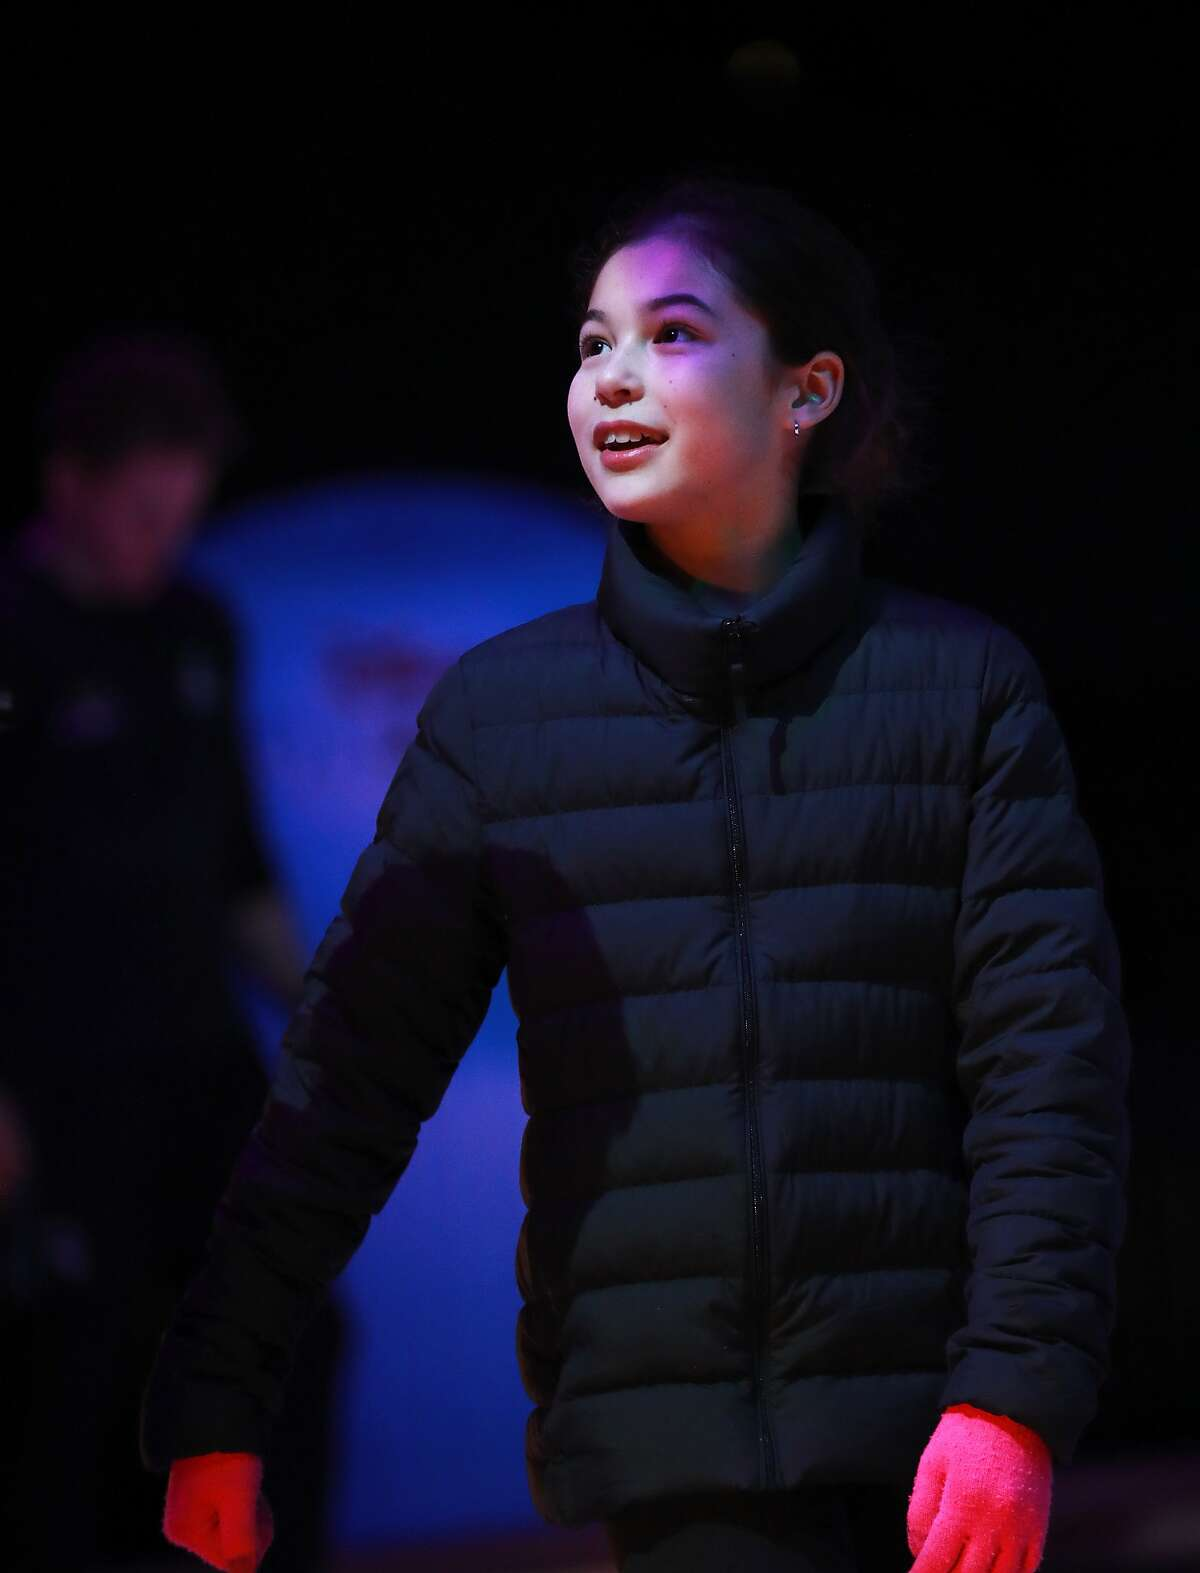 National ice skating champion Alysa Liu, 13, skates at Oracle Arena in Oakland Park, Calif., on Thursday, February 28, 2019.